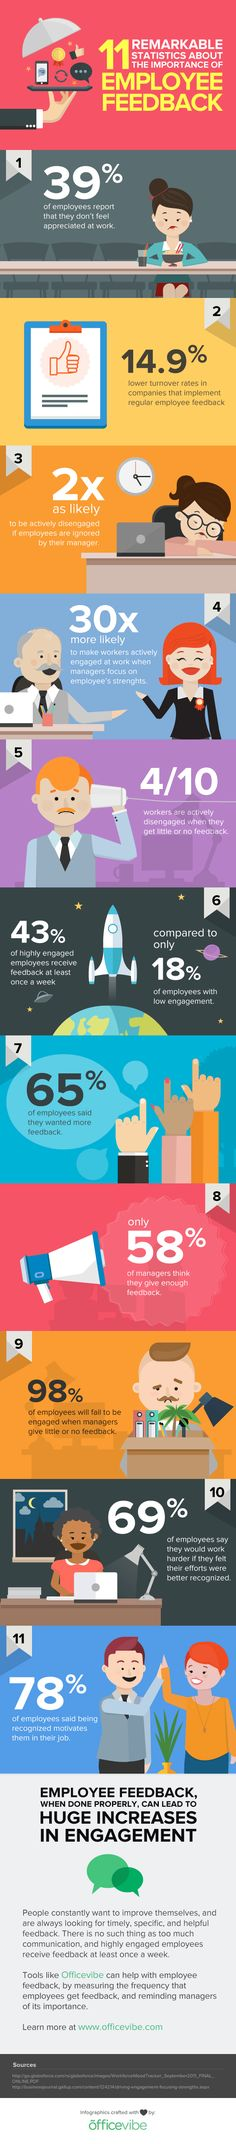 11 Remarkable Statistics About The Importance Of Employee Feedback (Infographic)